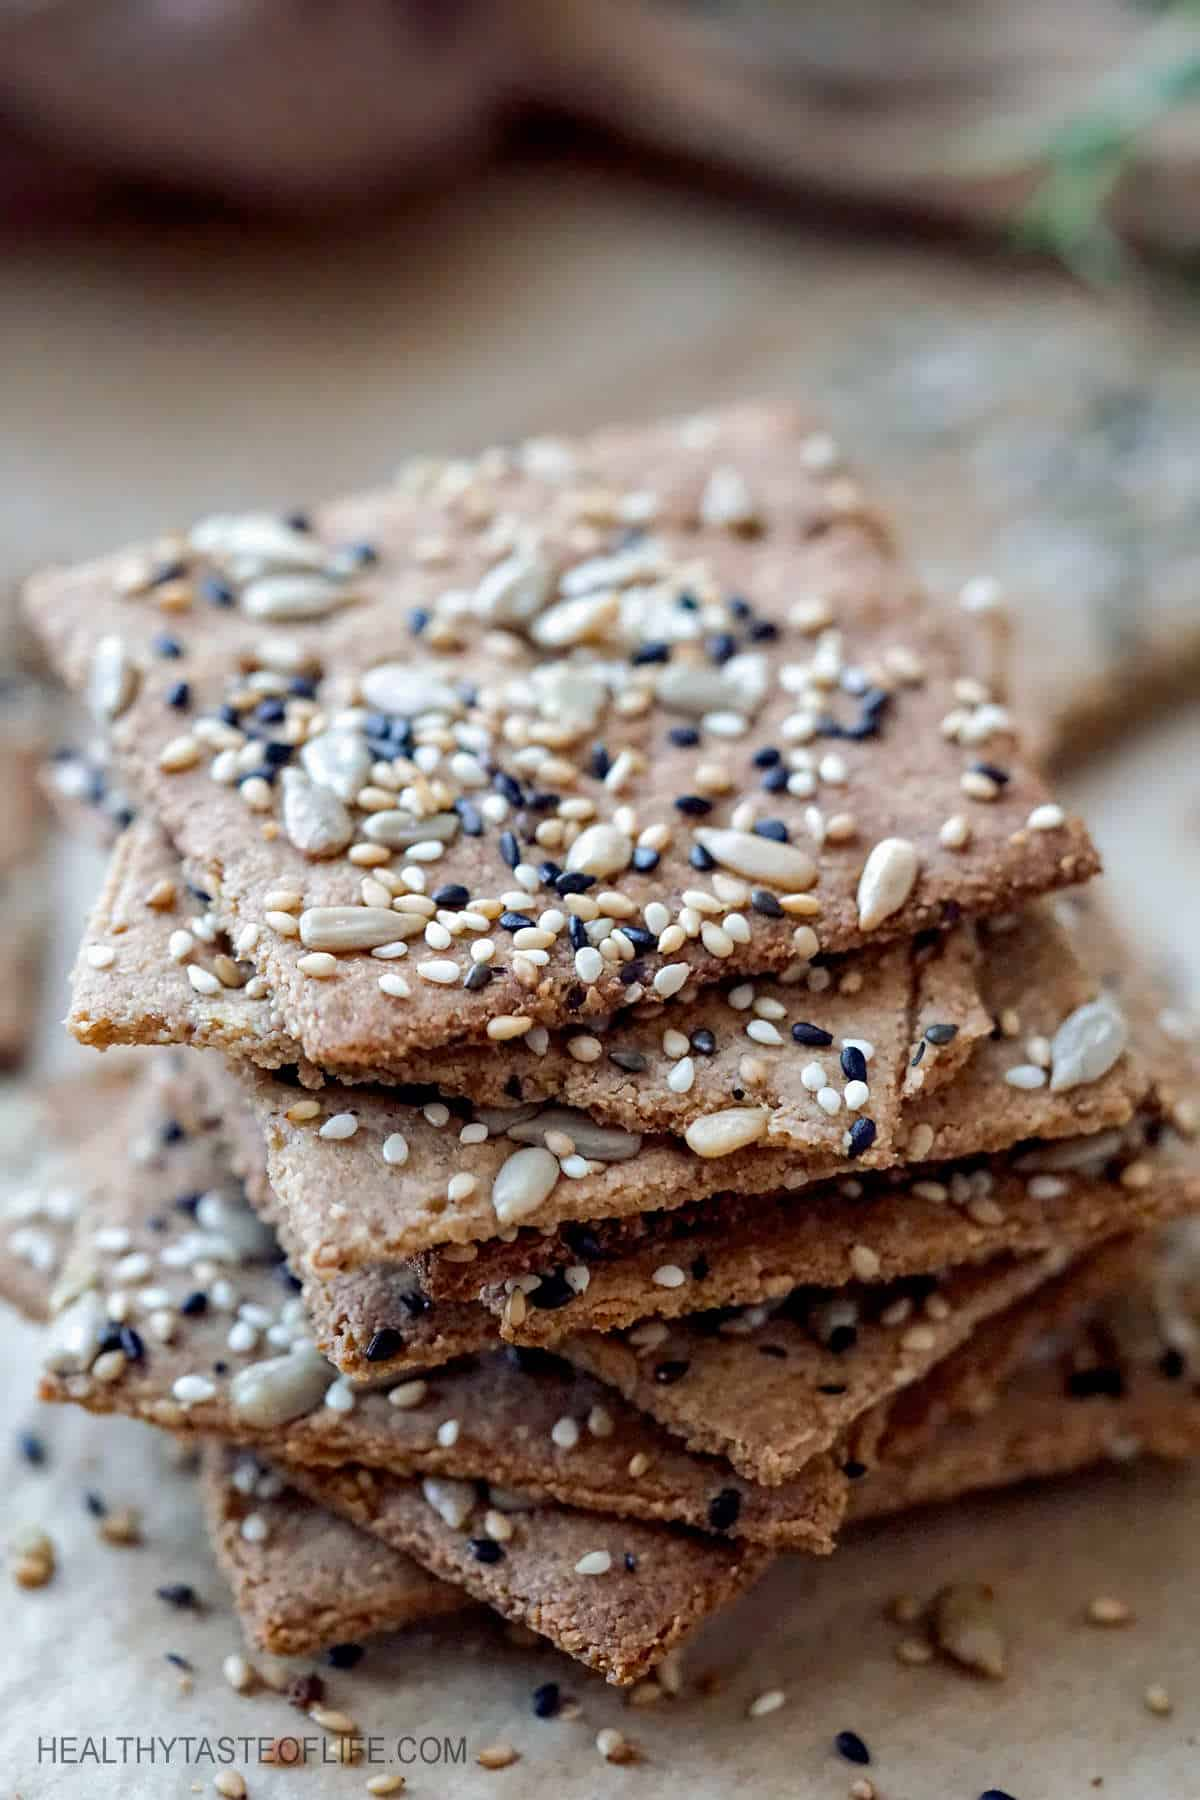 Keto crackers recipe without cheese. These homemade keto low carb crackers are made with healthy fats, a variety of seeds and grain free flour (tigernut or almond flour). These keto crackers recipe is also vegan (dairy free) and easy to make. #keto #crakers #lowcarb #seedcrackers #ketocrackers #vegan